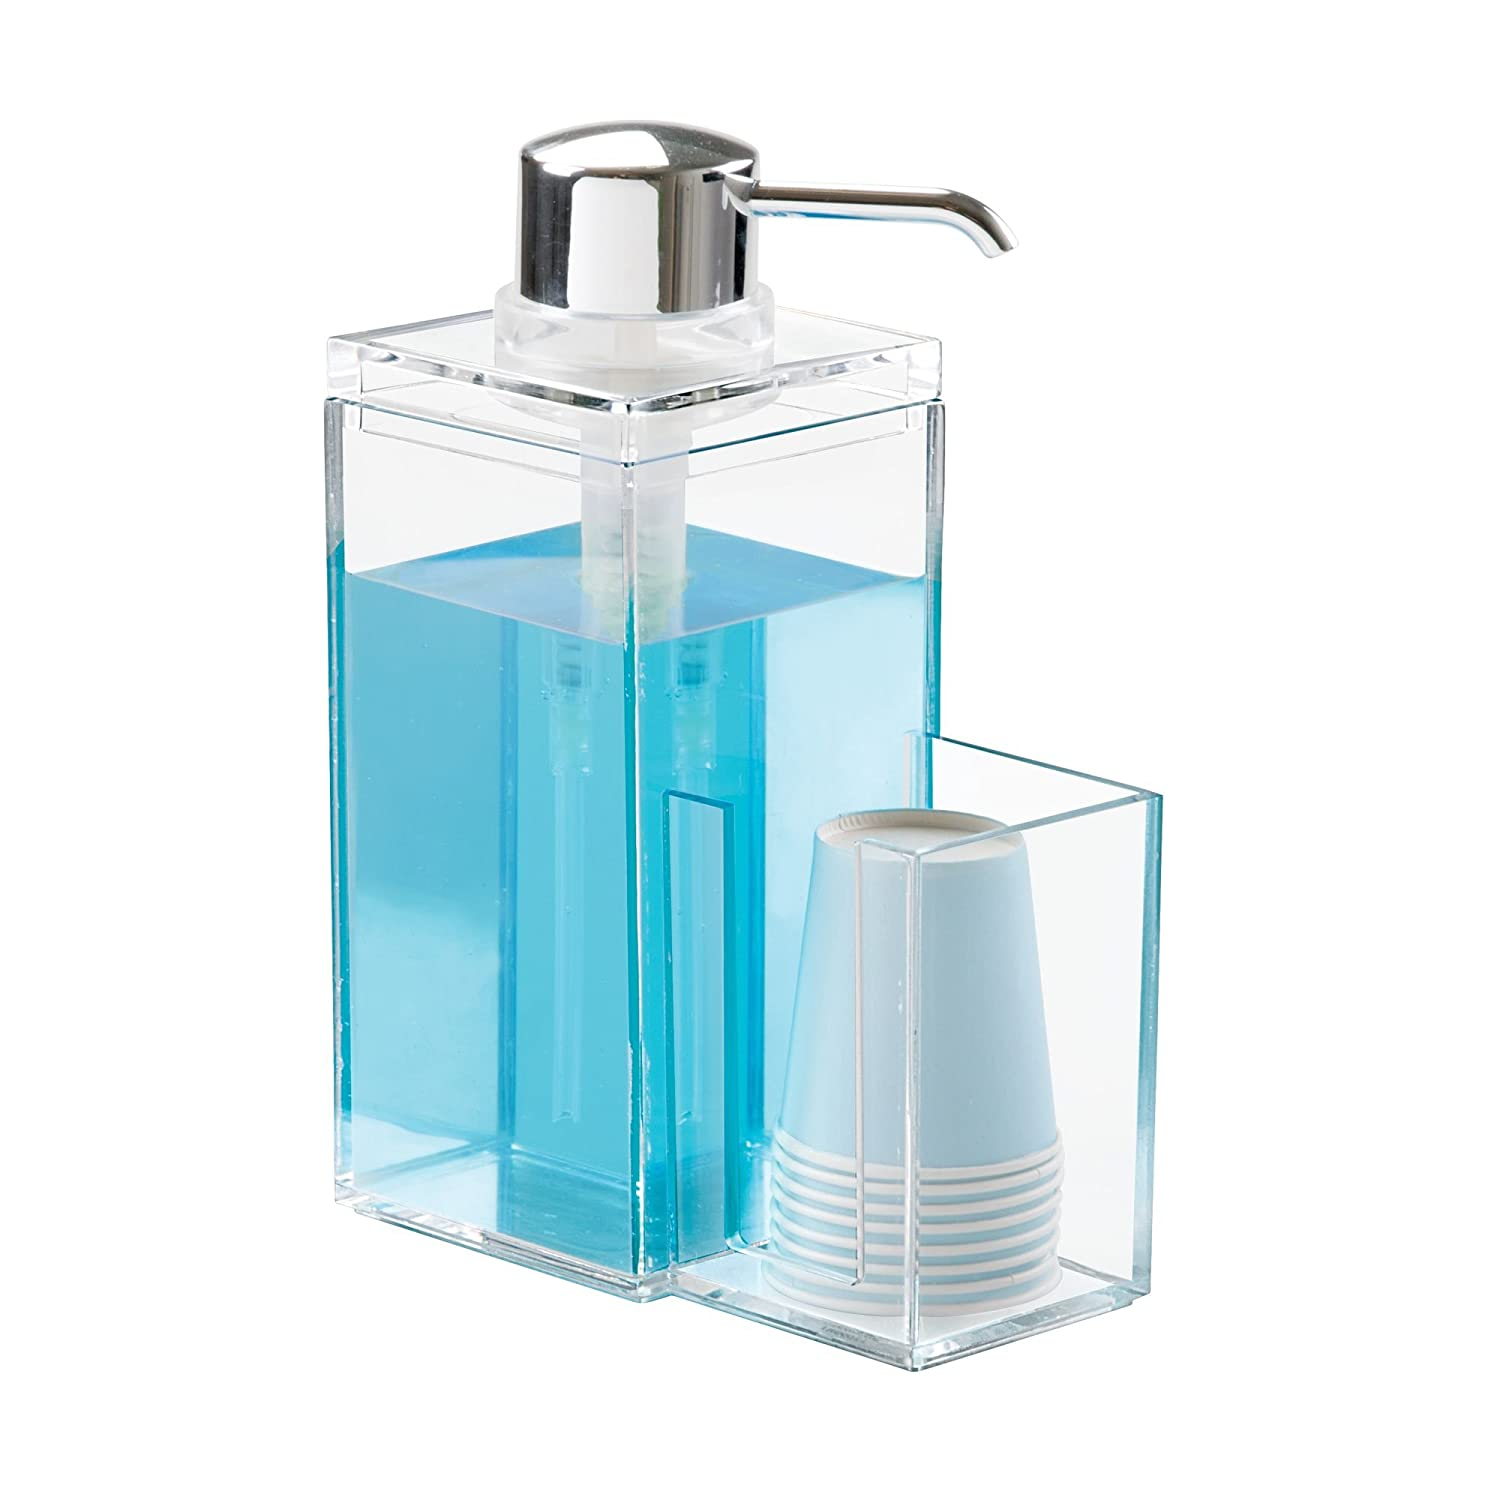 mDesign Mouthwash Dispenser Pump Caddy Bathroom Vanity - Clear/Chrome MetroDecor